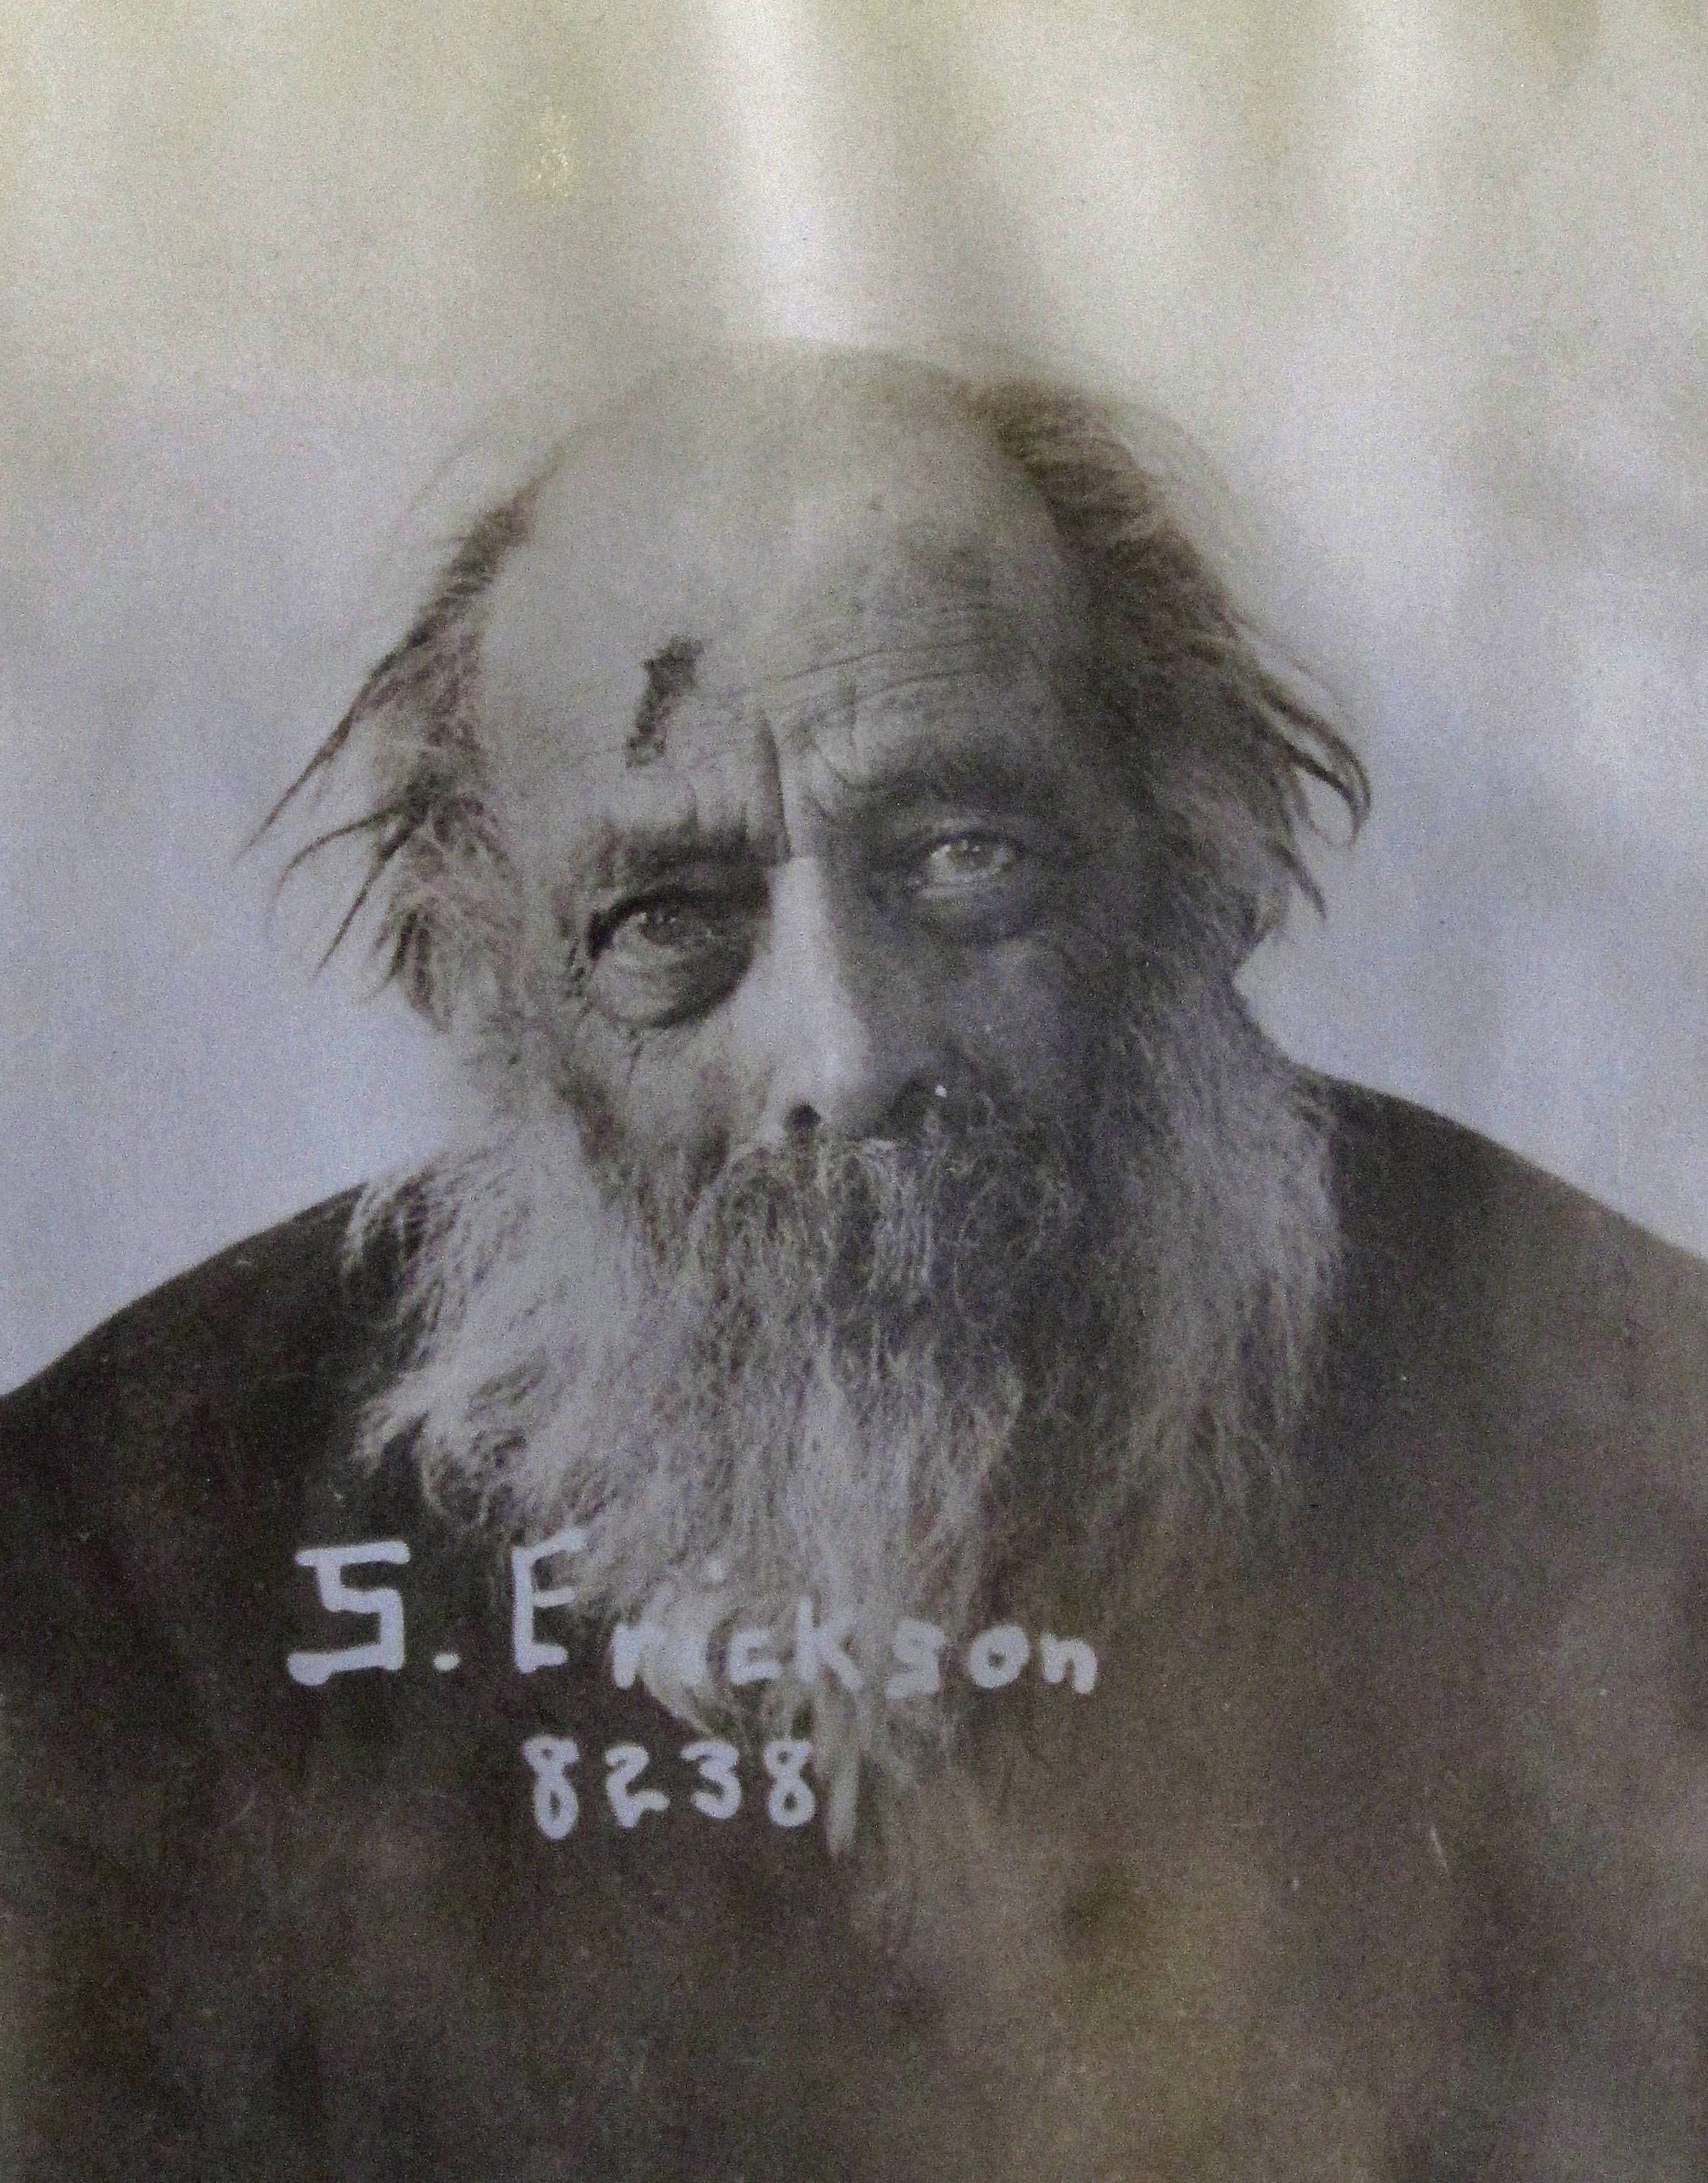 This undated photo shows S. Erickson, a former patient at an Oregon state mental hospital in Salem, Ore. Erickson was one of more than 3,000 people, mostly former mental patients, whose remains were never claimed and remain at the hospital.